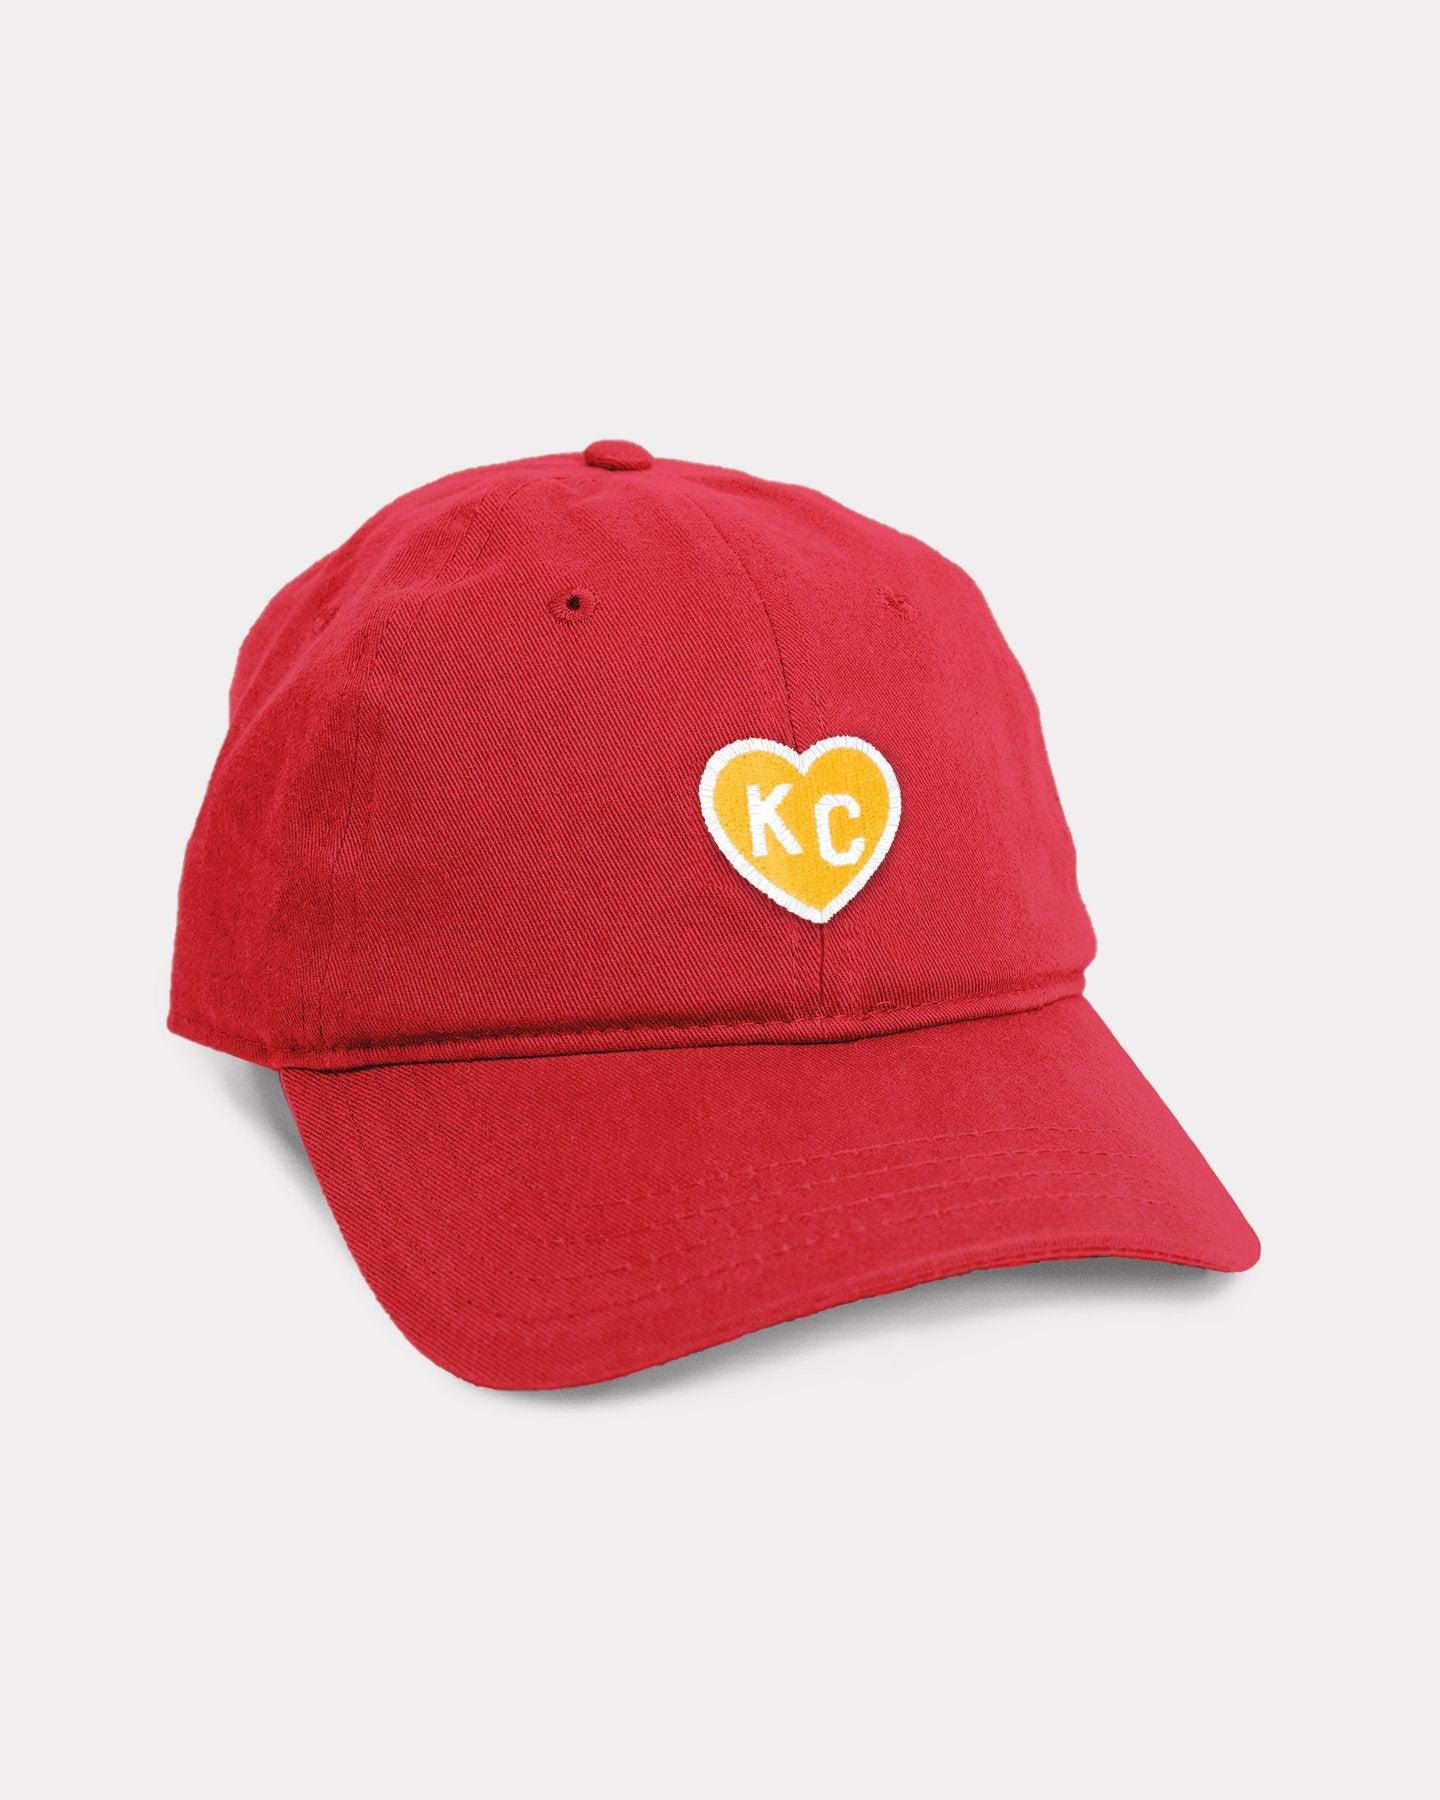 Red & Yellow KC Heart Vintage Dad Hat